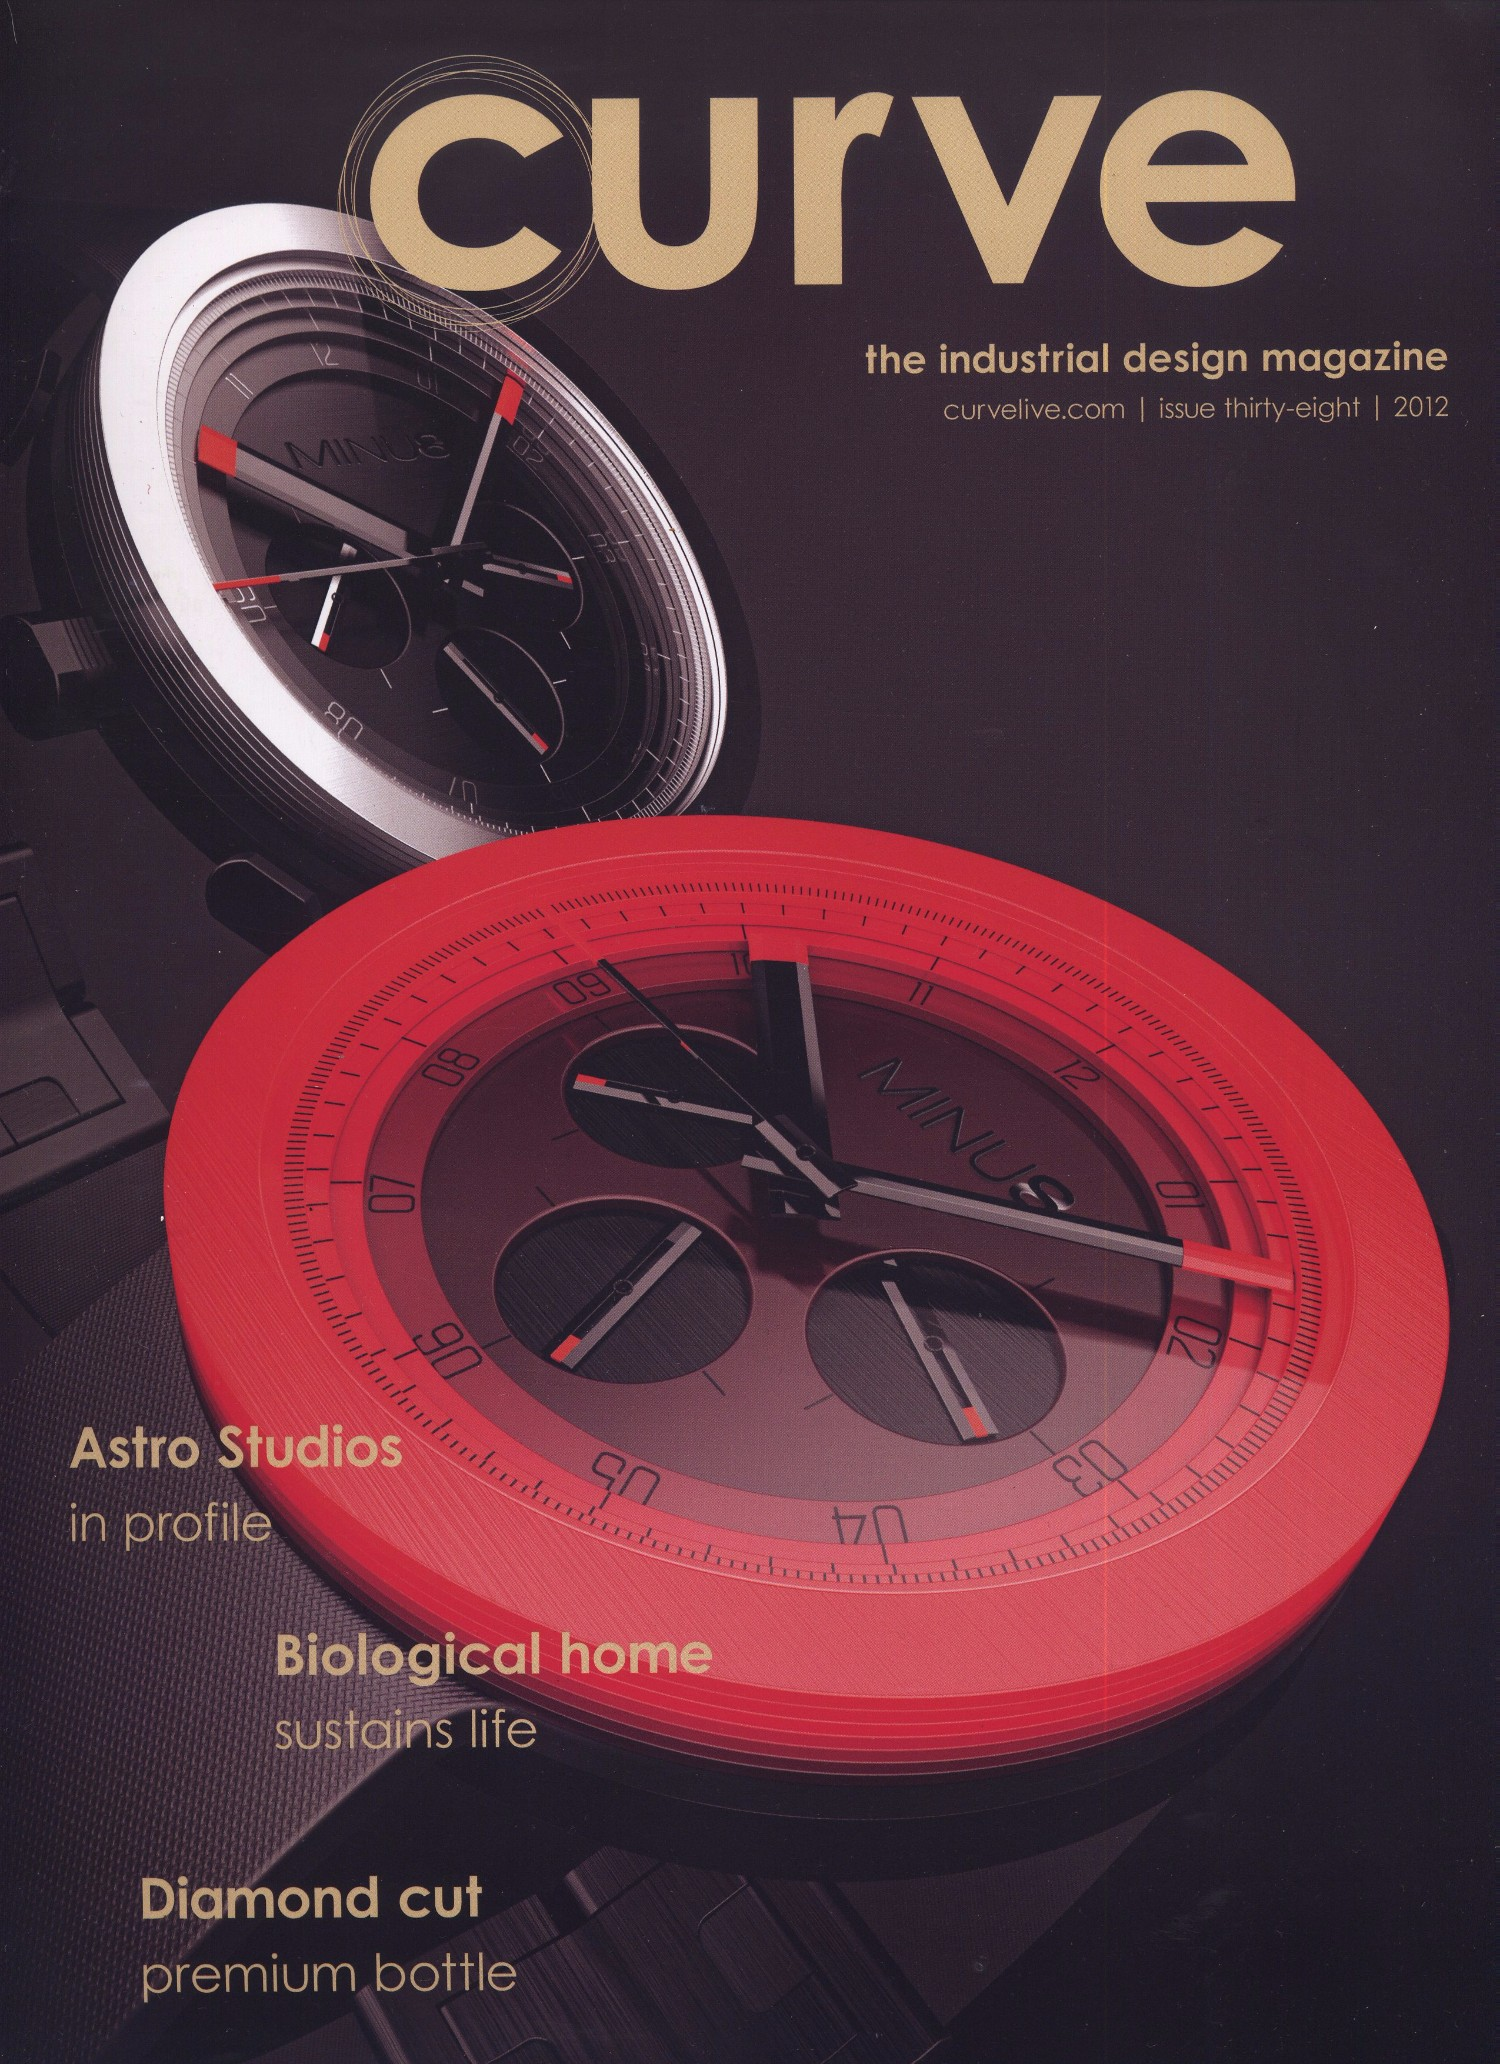 CURVE, issue 38, Mar 2012